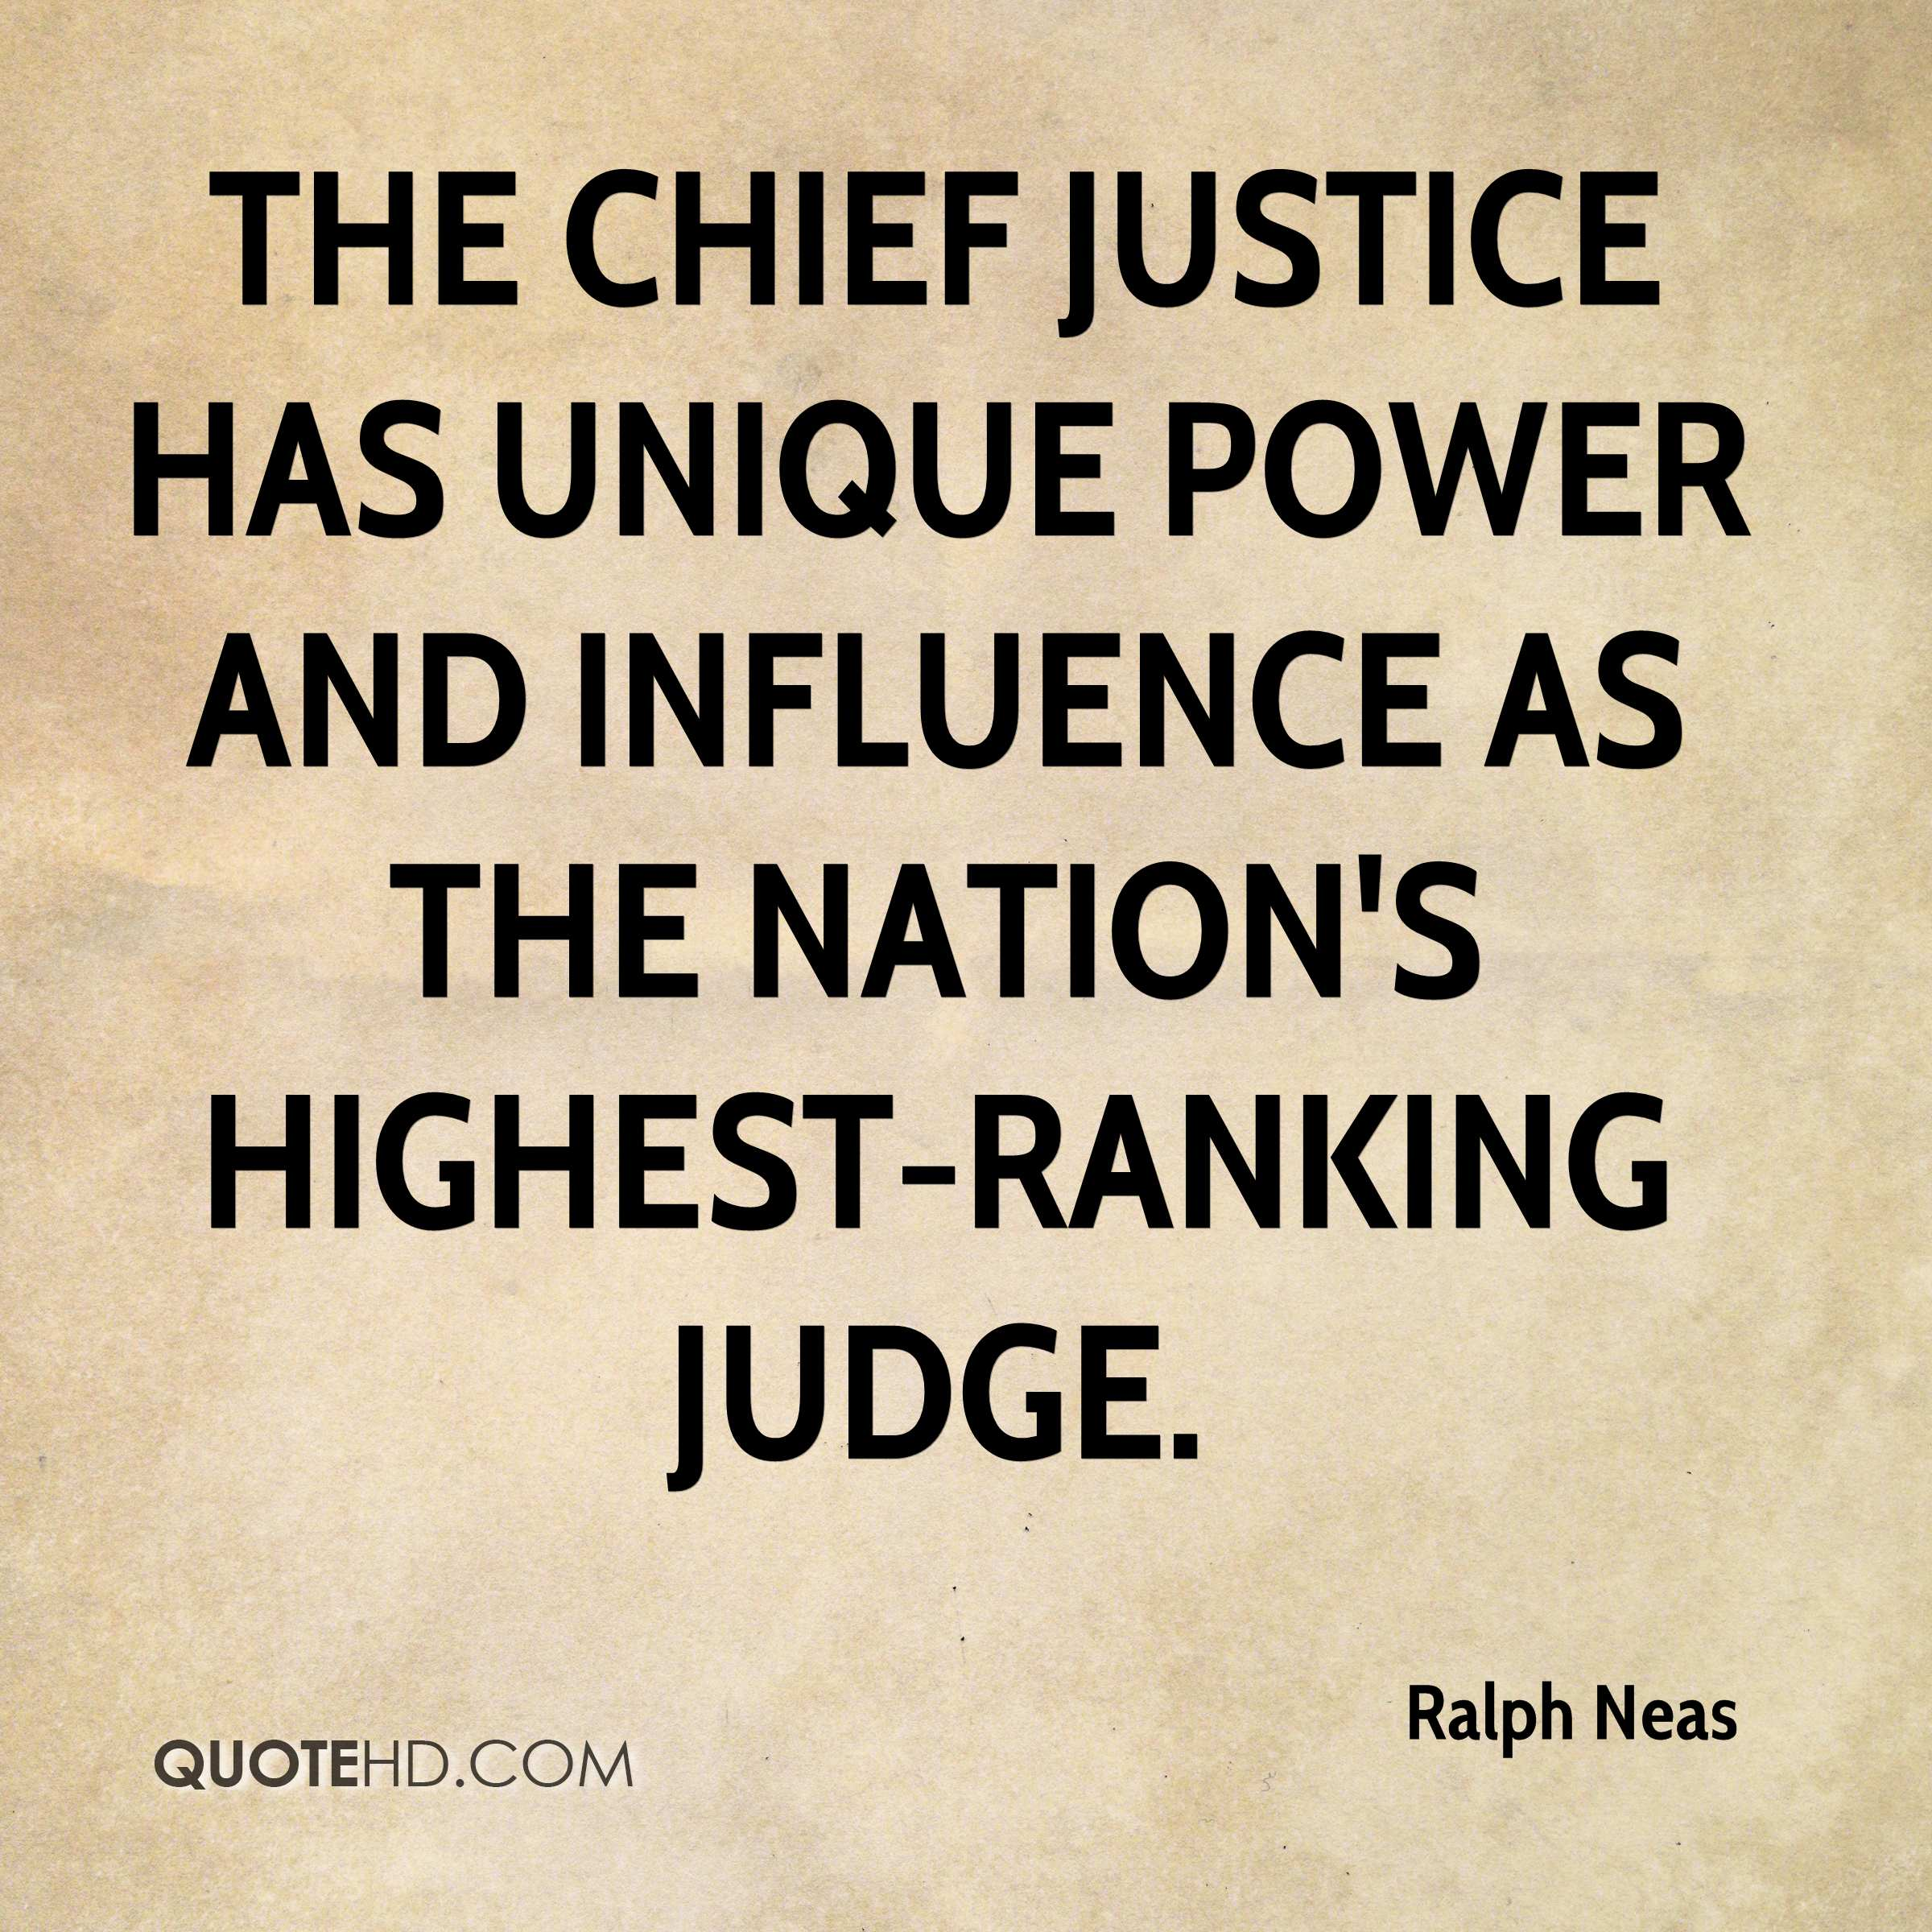 The chief justice has unique power and influence as the nation's highest-ranking judge.